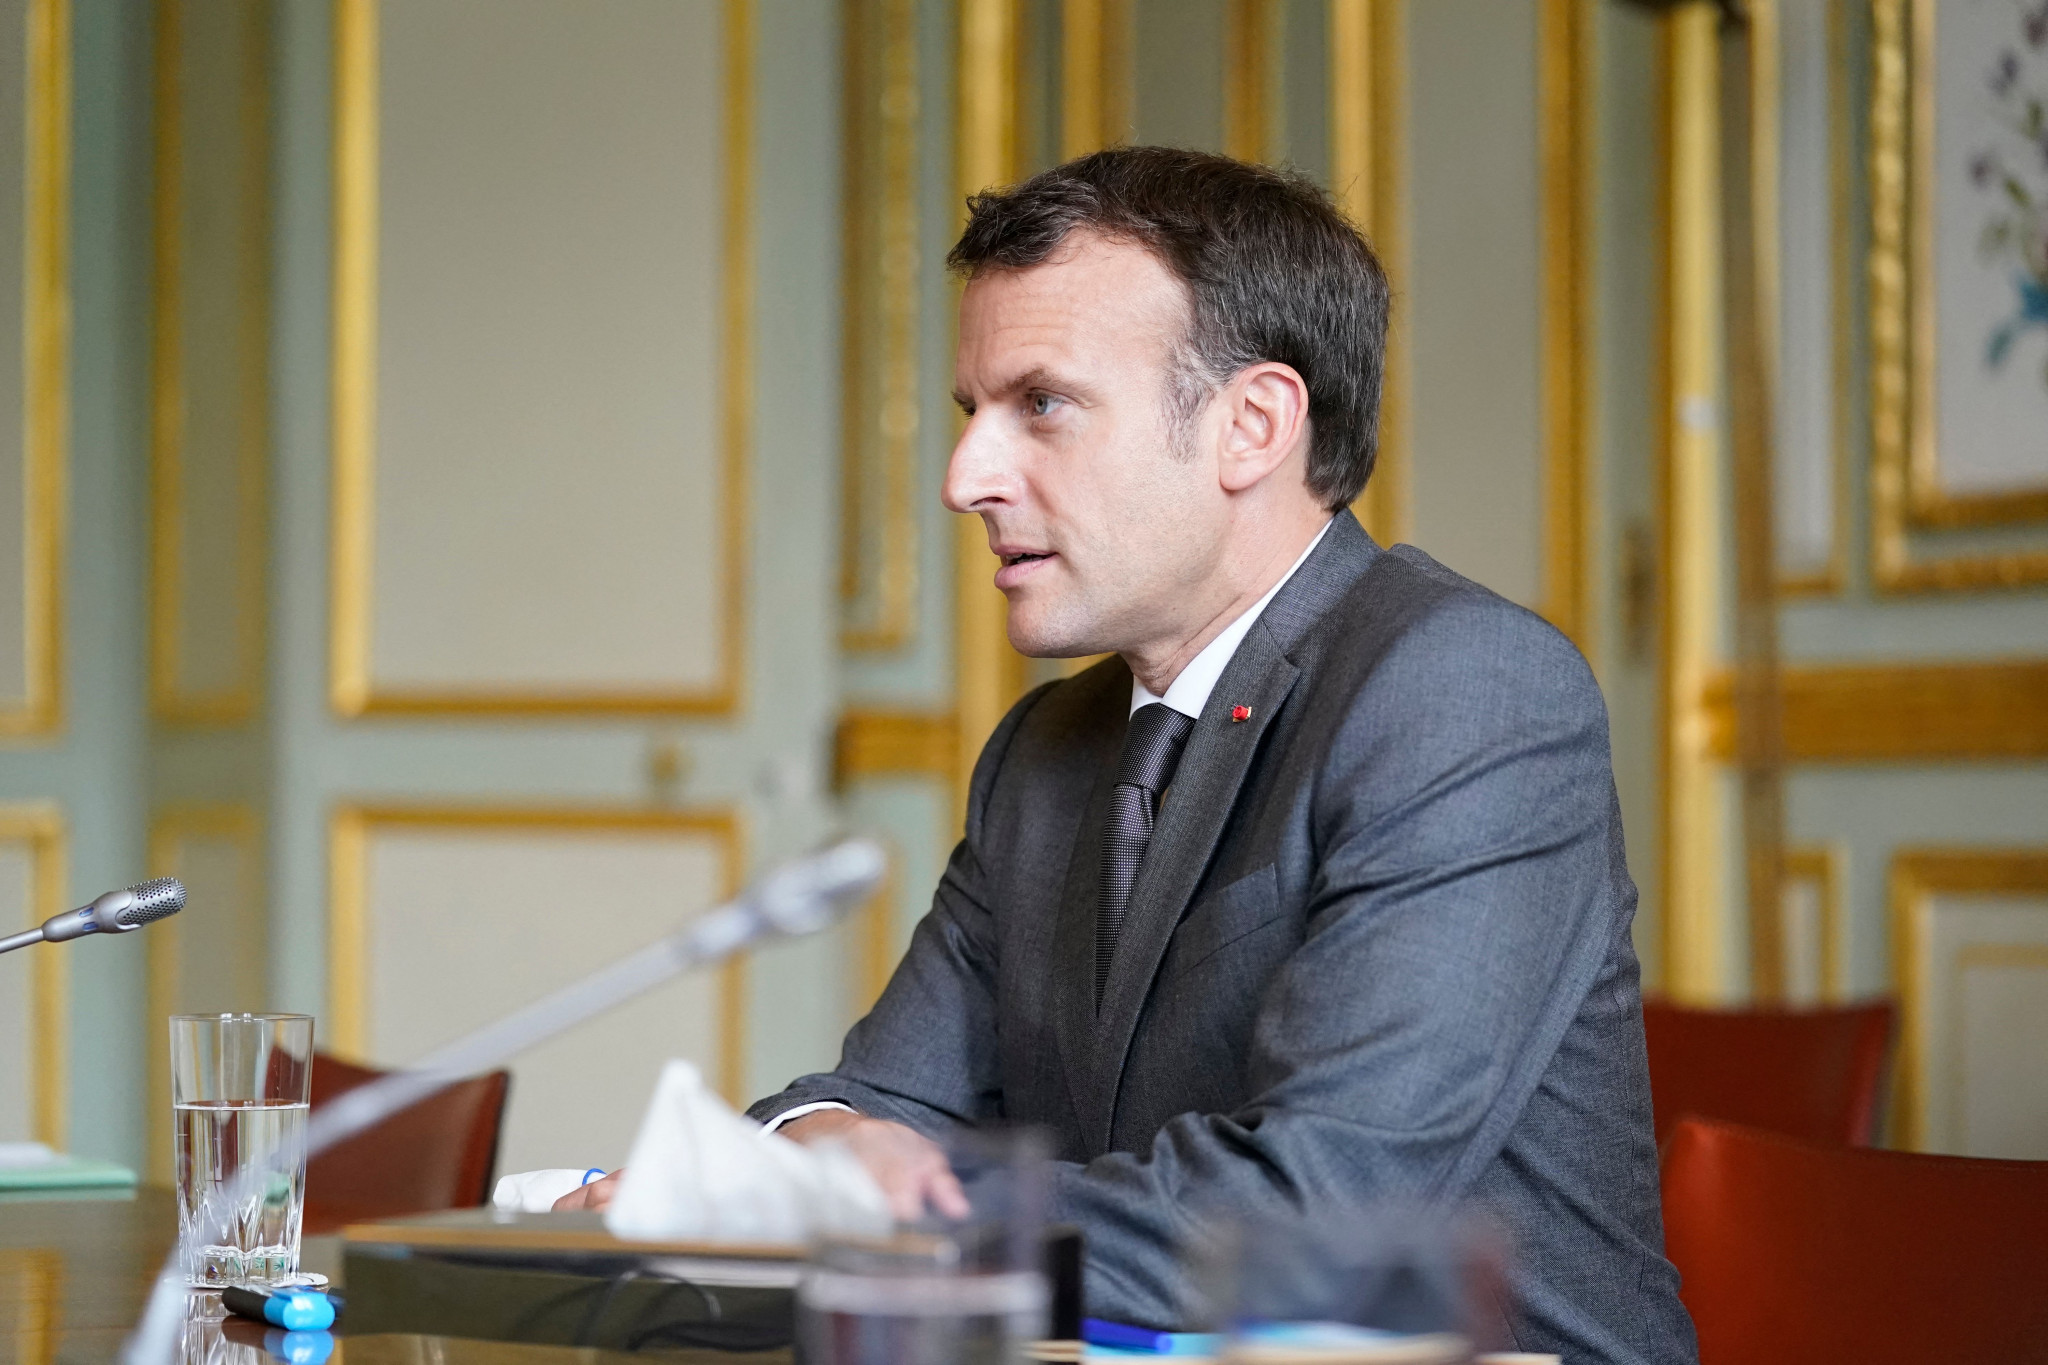 Anne Hidalgo has been critical of French President Emmanuel Macron ©Getty Images